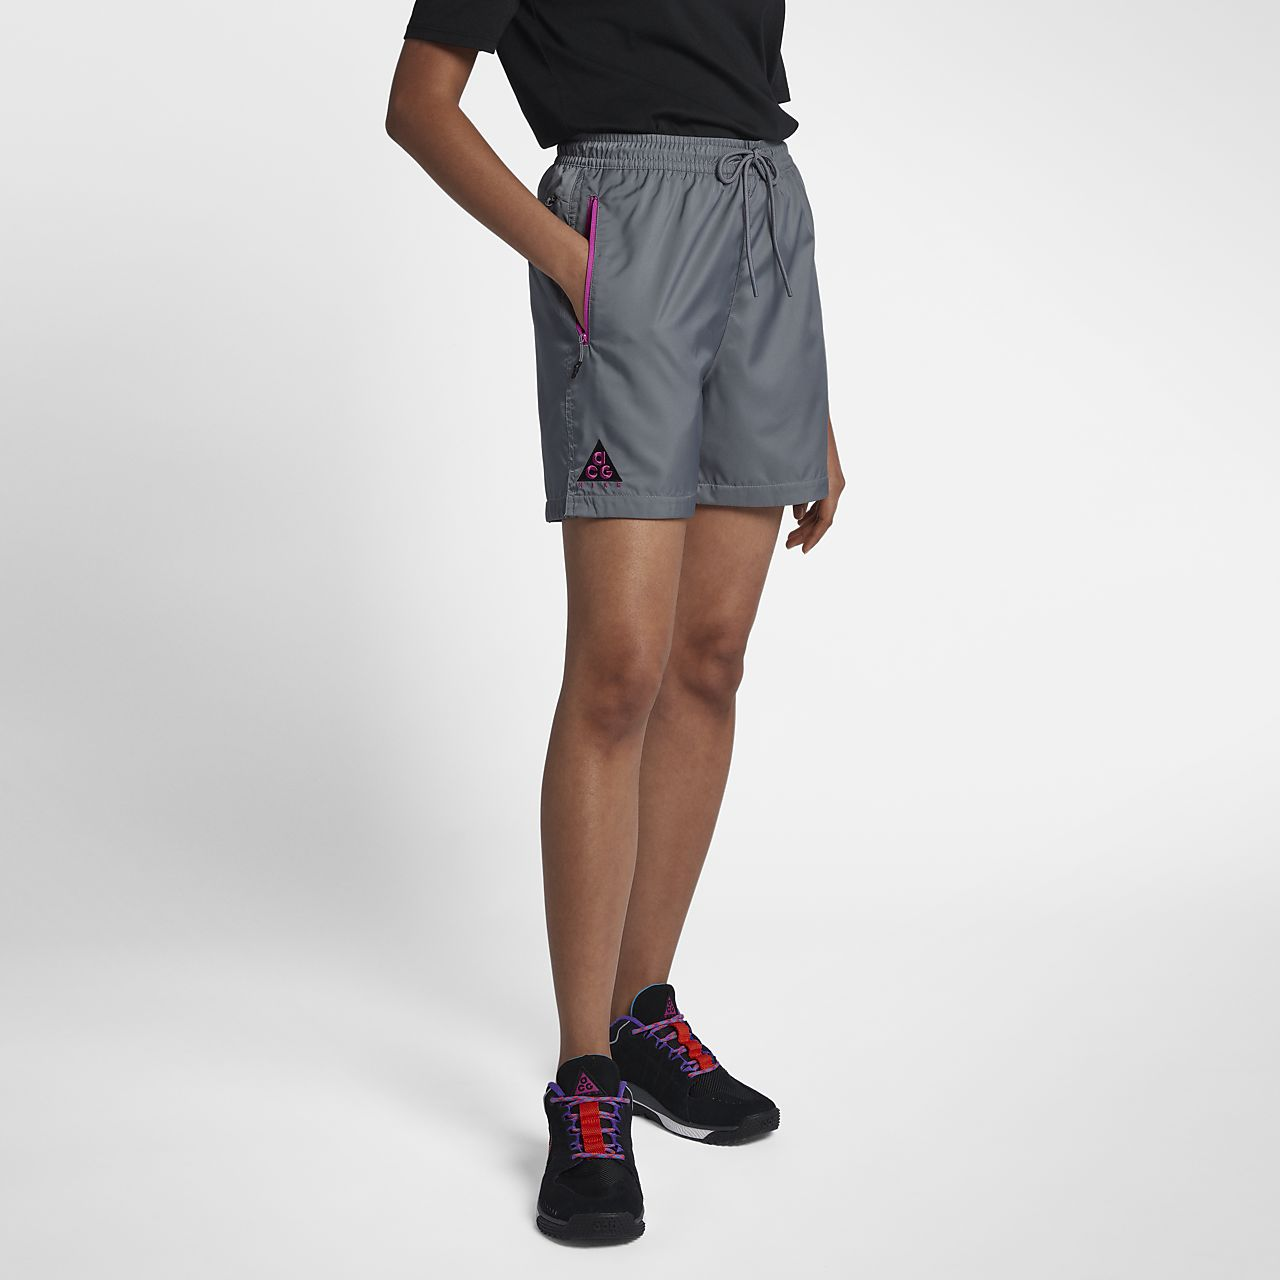 bfe69161ae3e89 Low Resolution Nike ACG Woven Shorts Nike ACG Woven Shorts